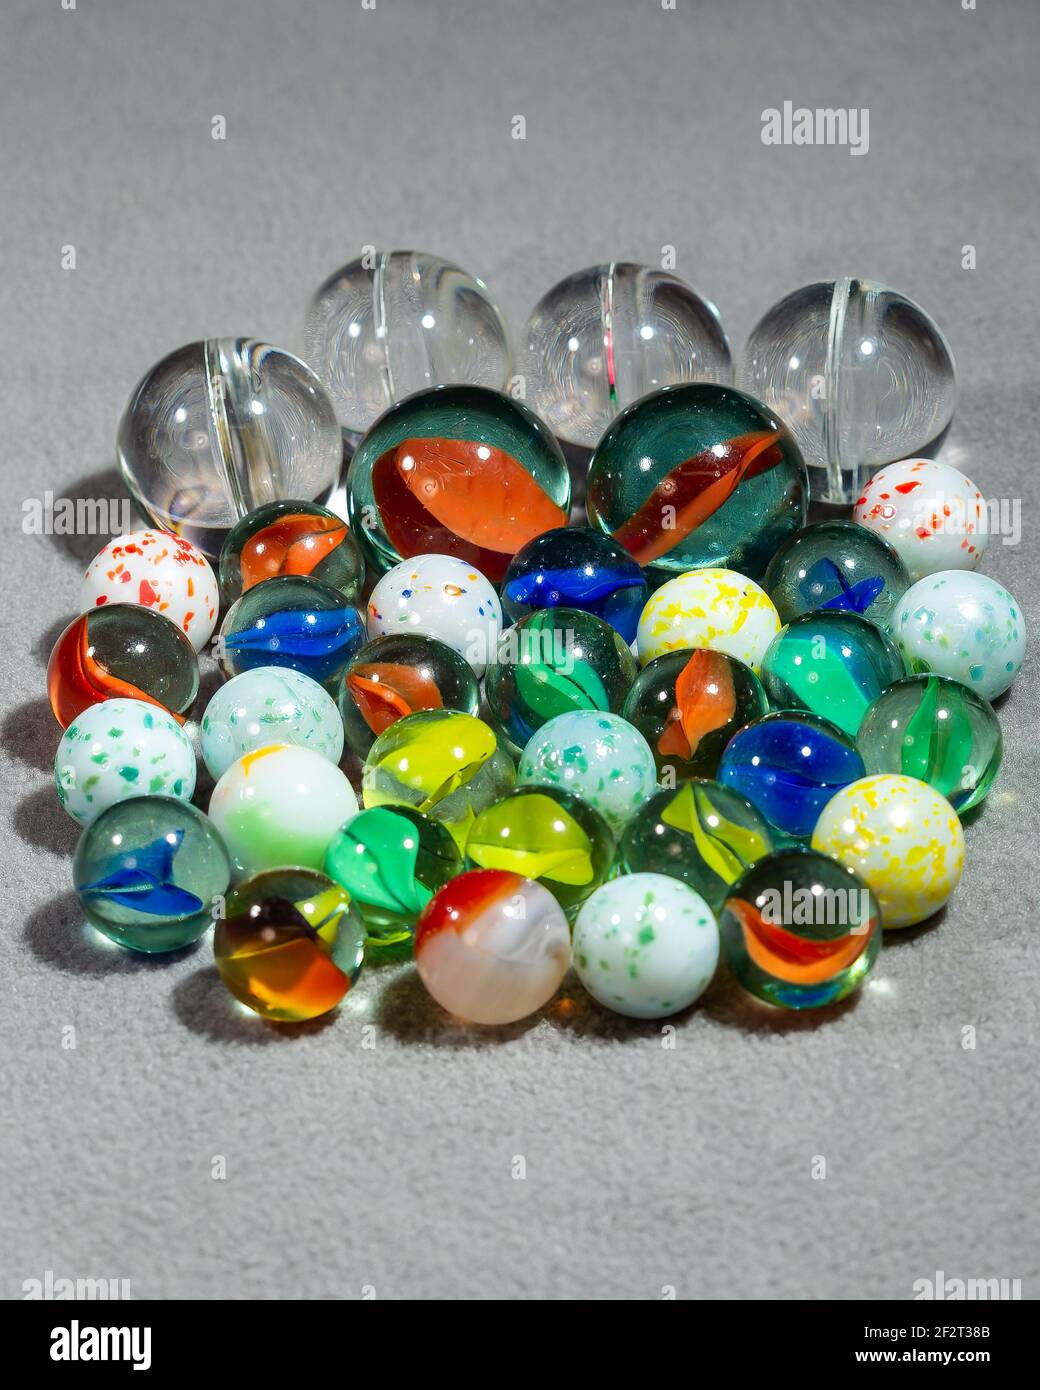 collection of various types and sizes of marbles grouped together Stock Photo